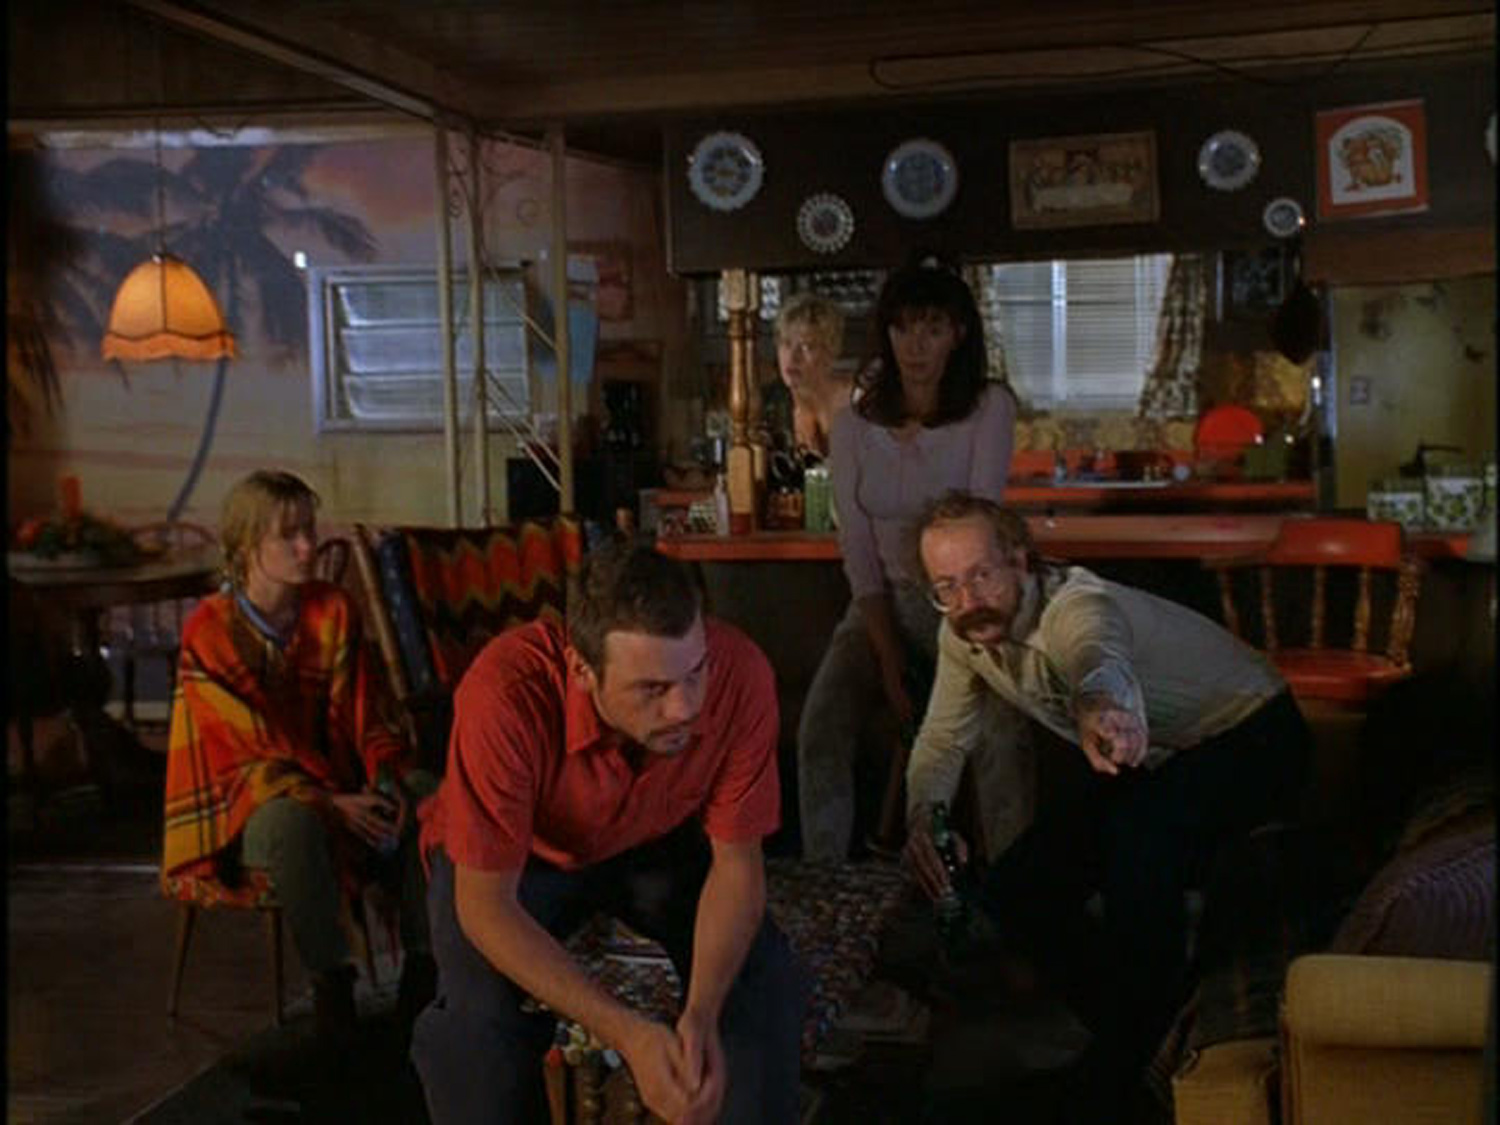 A view of the cast (Skeet Ulrich, Gary Oldman, Mary Steenburgen, Anna Gunn & Radha Mitchell) in Sonny's trailer interior stage set.